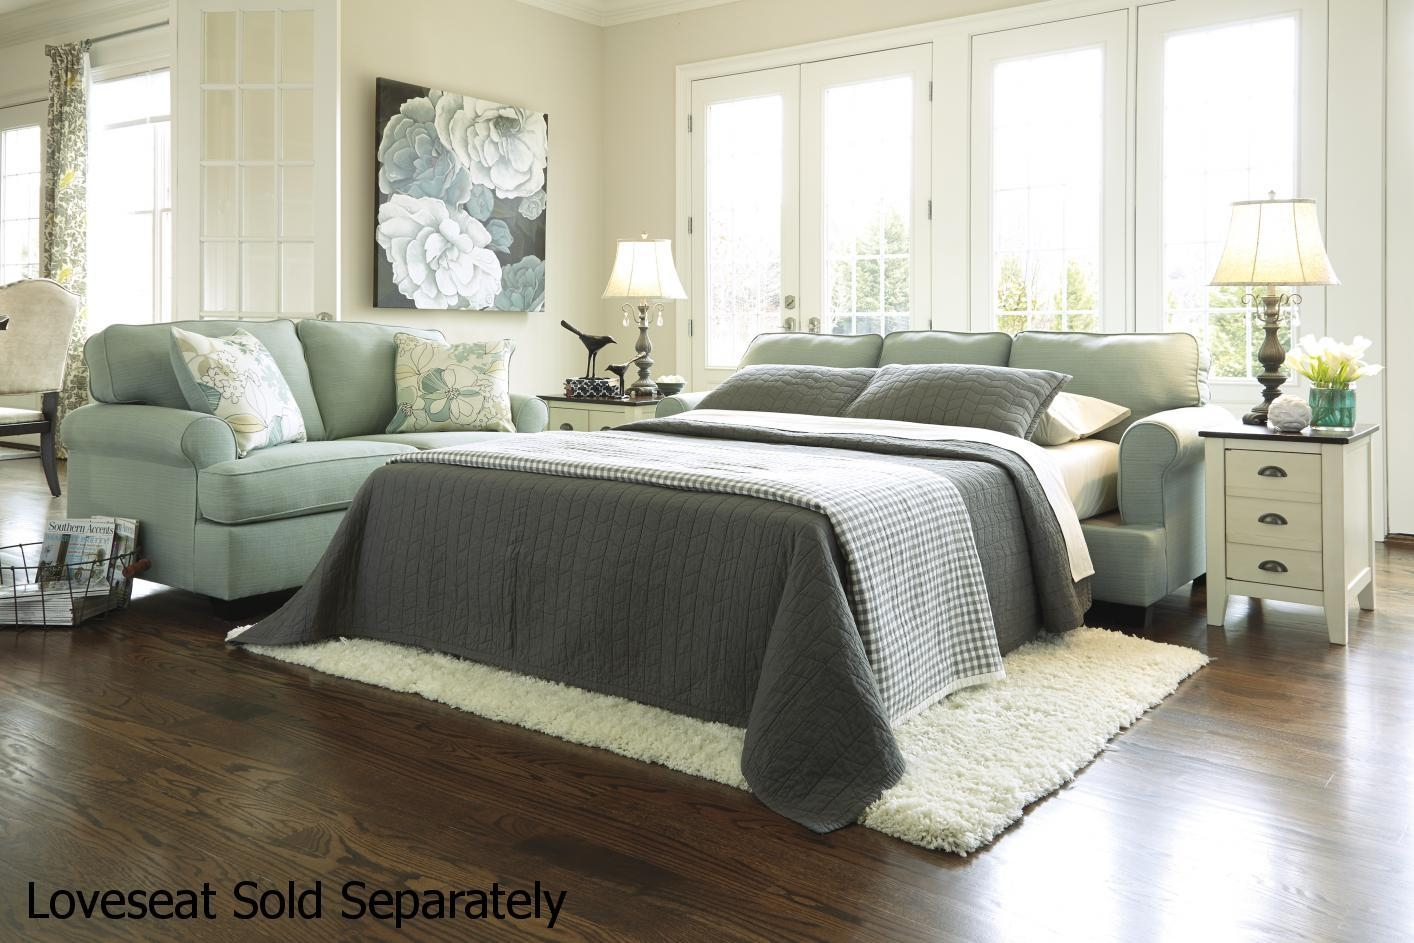 Daystar Seafoam Green Fabric Sofa Bed – Steal A Sofa Furniture With Regard To Seafoam Green Couches (Image 8 of 20)